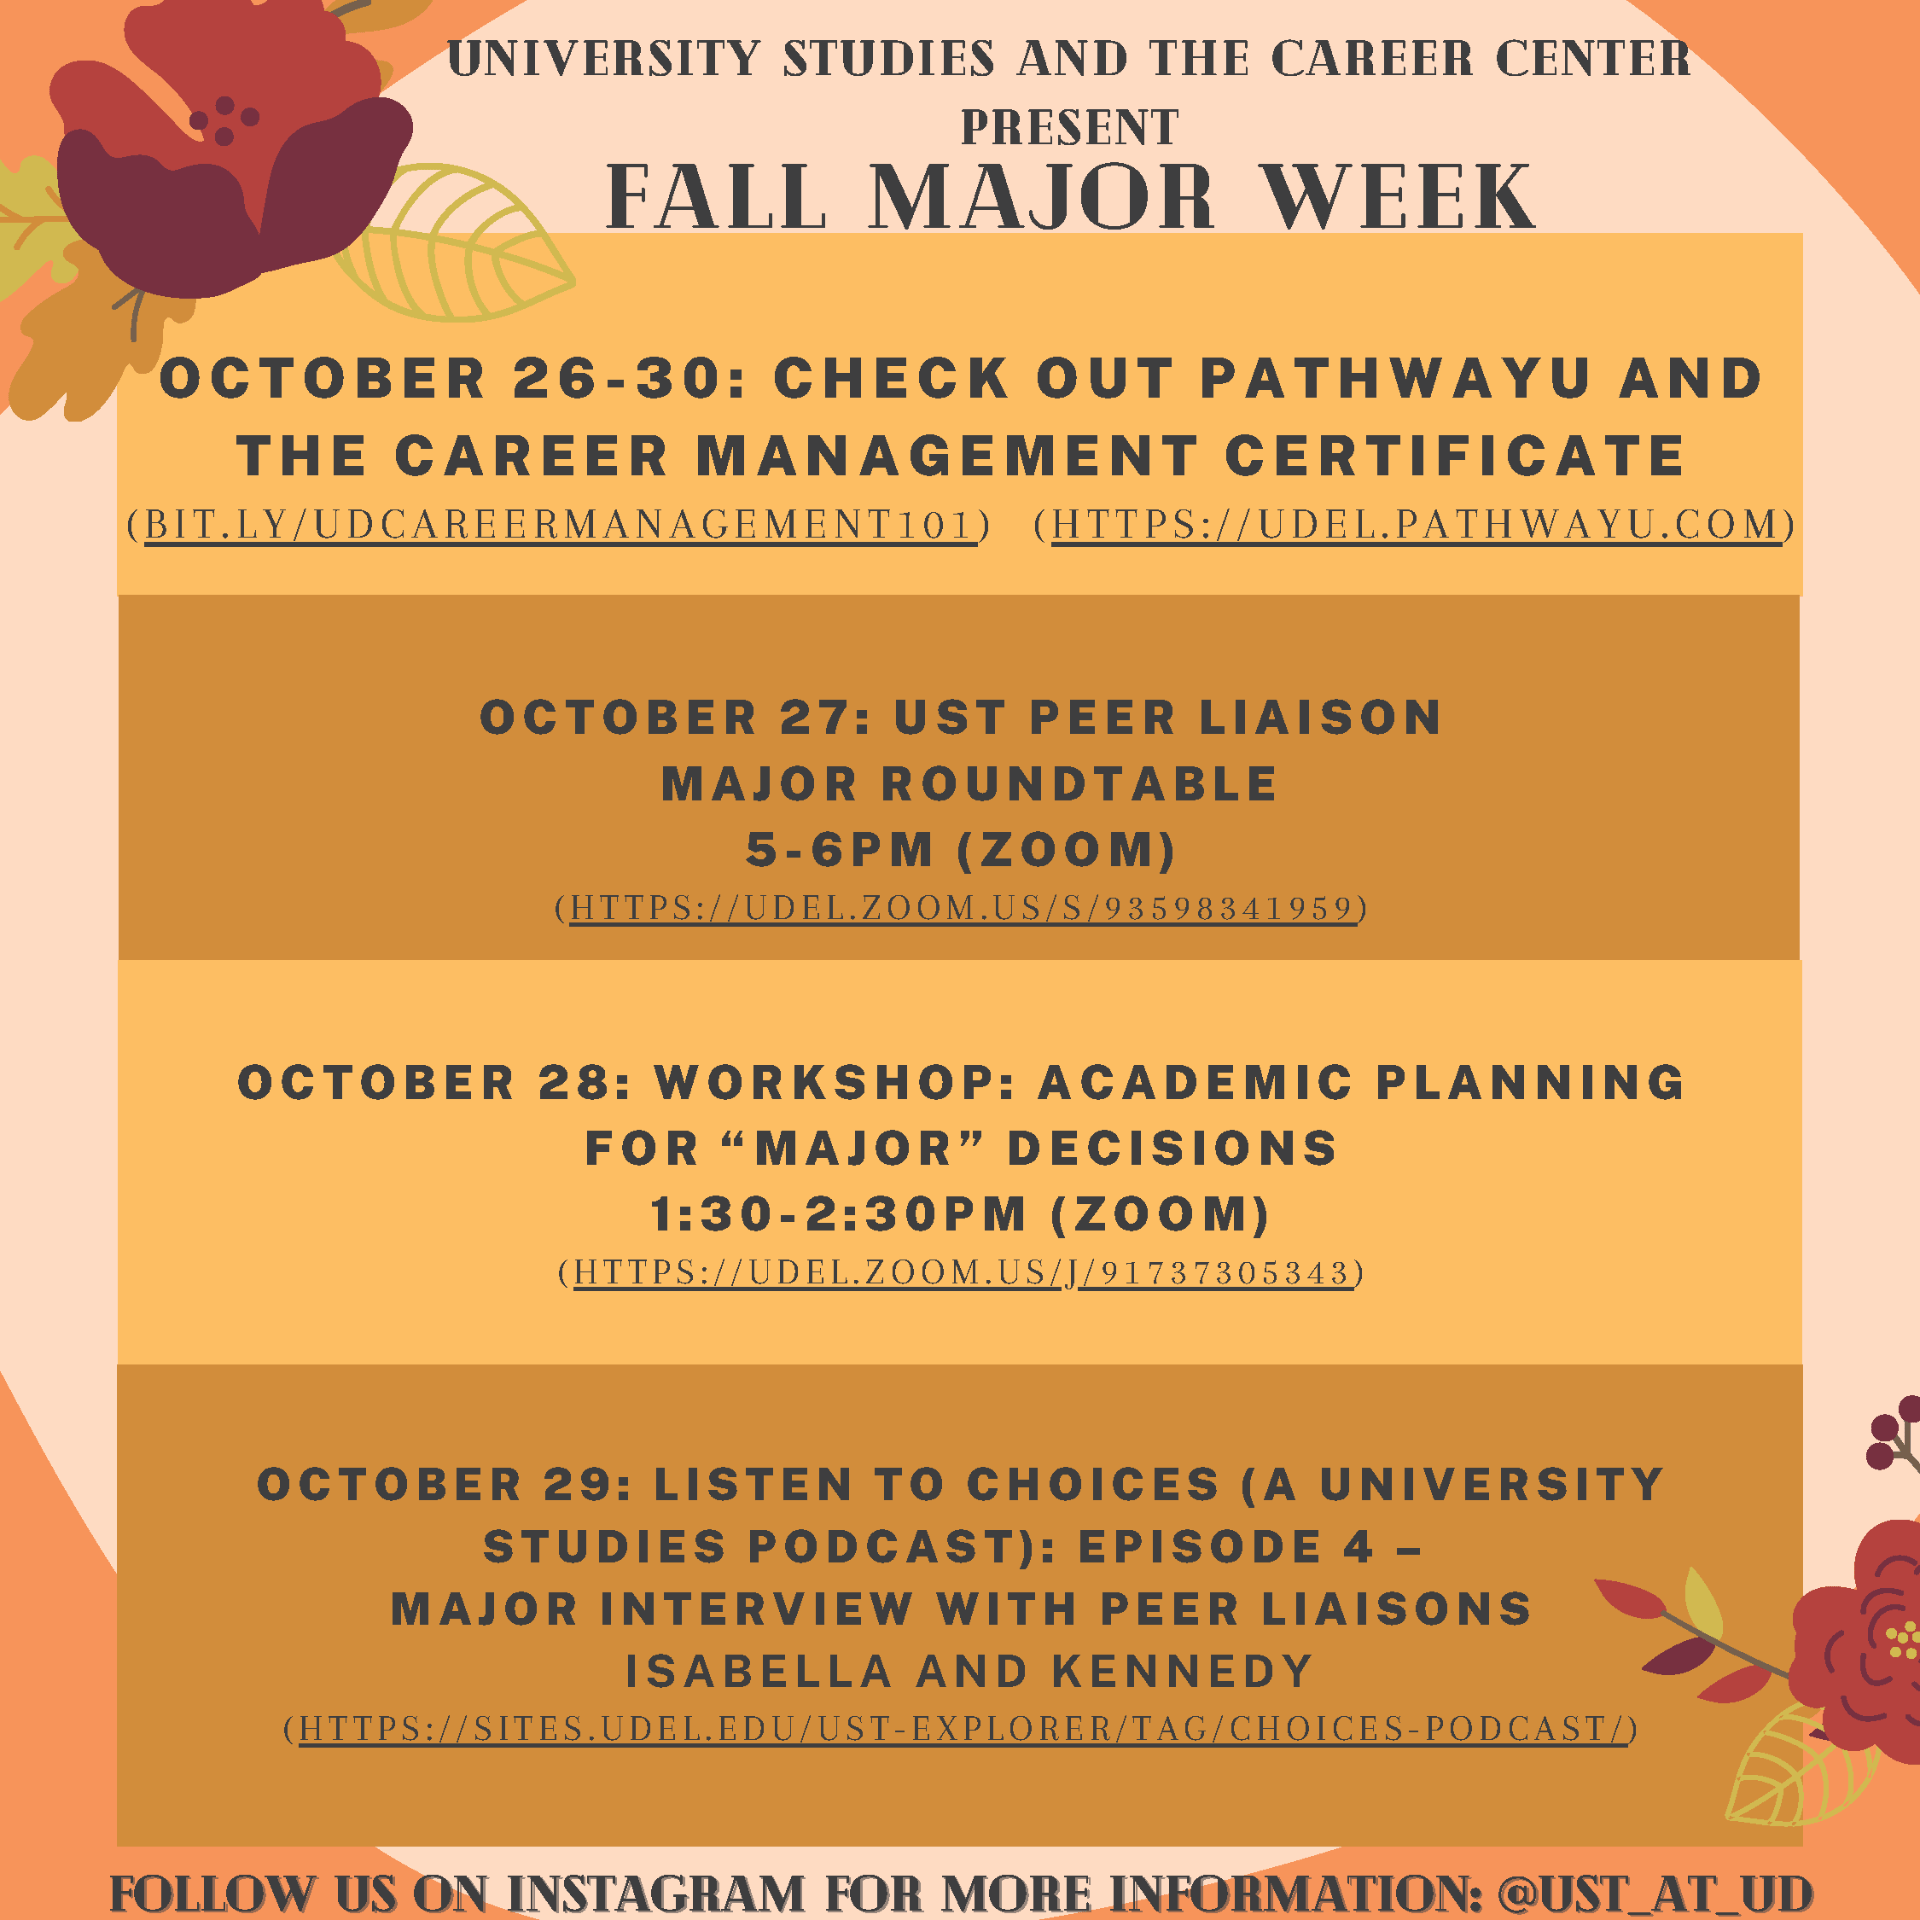 "University Studies and the Career Center present Fall Major Week. October 26-30: Check out PathwayU and the Career Management Certificate. October 27: UST Peer Liaison Major Roundtable 5-6 PM. October 28: Workshop: Academic Planning for ""Major"" Decisions 1:30-2:30 PM (Zoom). October 29: Listen to Choices (a University Studies Podcast): Episode 4 - Major Interview with Peer Liaisons Isabella and Kennedy. Follow us on instagram for more information @ust_at_ud."